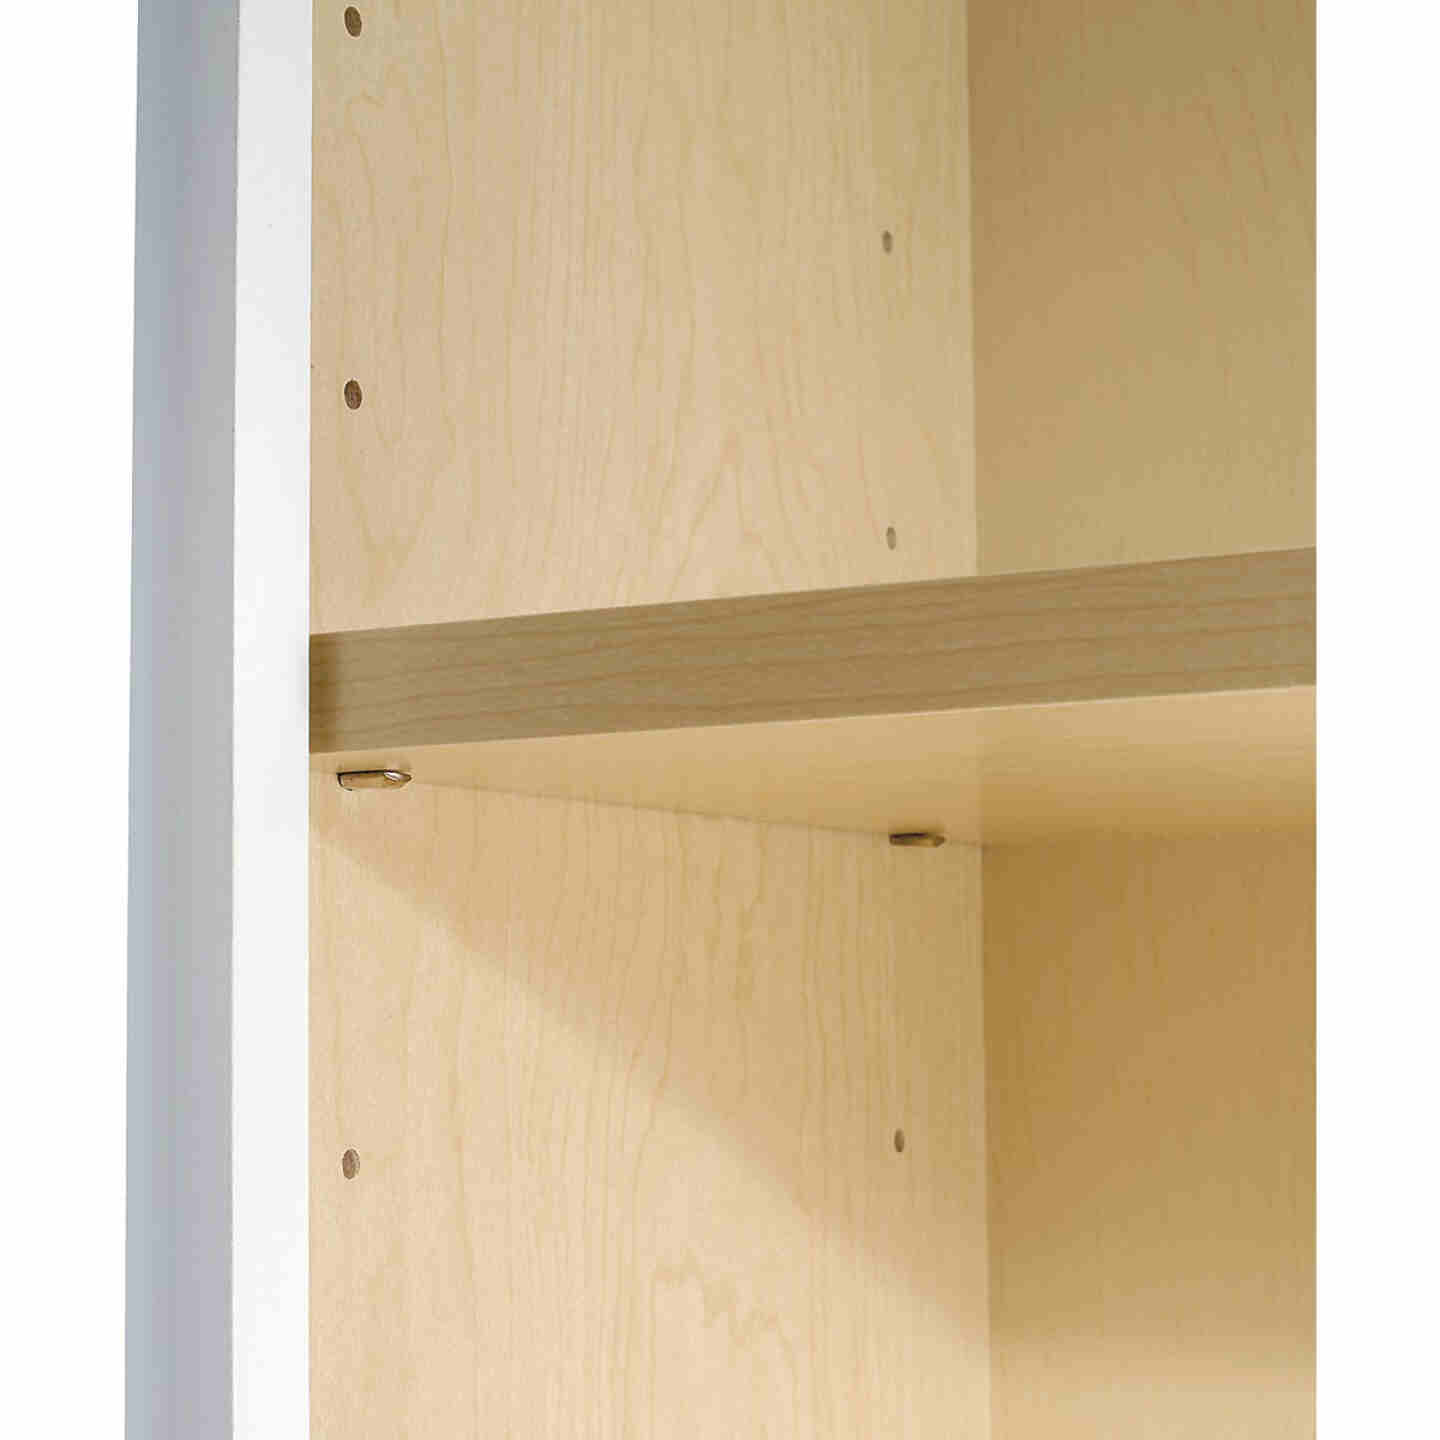 Continental Cabinets Andover Shaker 12 In. W x 30 In. H x 12 In. D White Thermofoil Wall Kitchen Cabinet Image 4